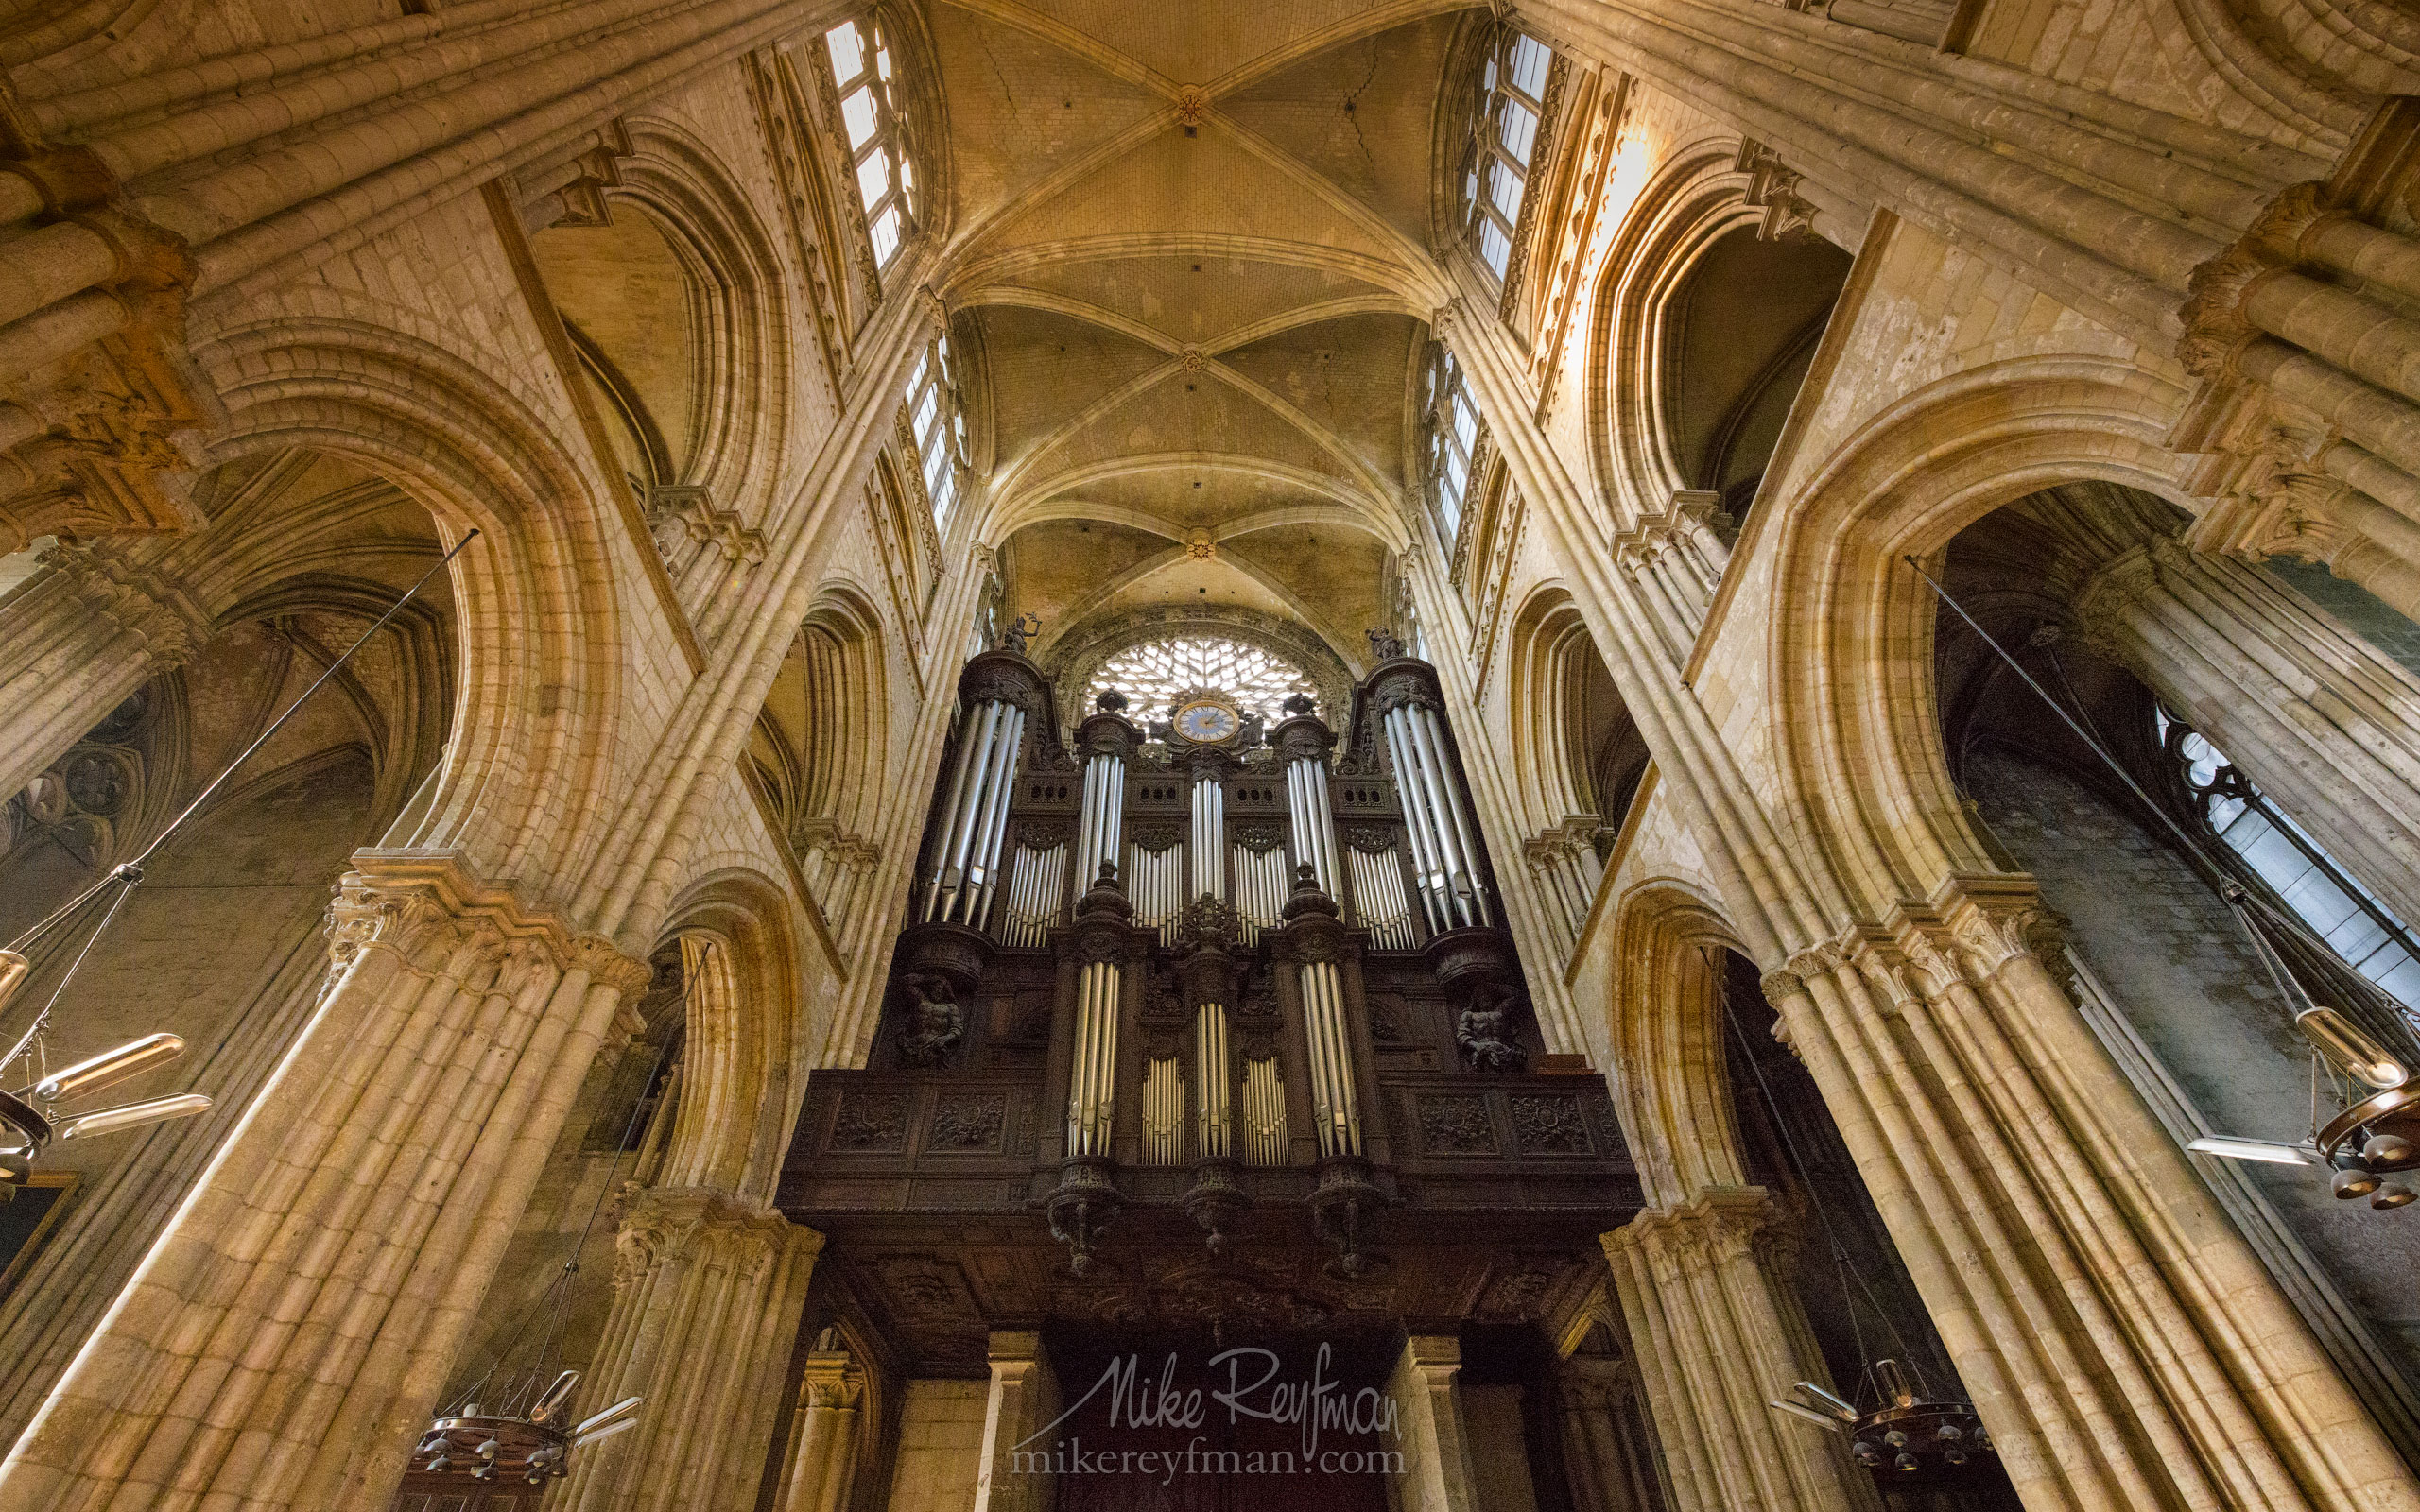 Rouen Cathedral or Cathedral of our Lady of Rouen (Cathédrale de Notre Dame de Rouen). Rouen, Normandy, France FR1-MR50A0472 - Symmetries and Beyond. Random photos. France. - Mike Reyfman Photography